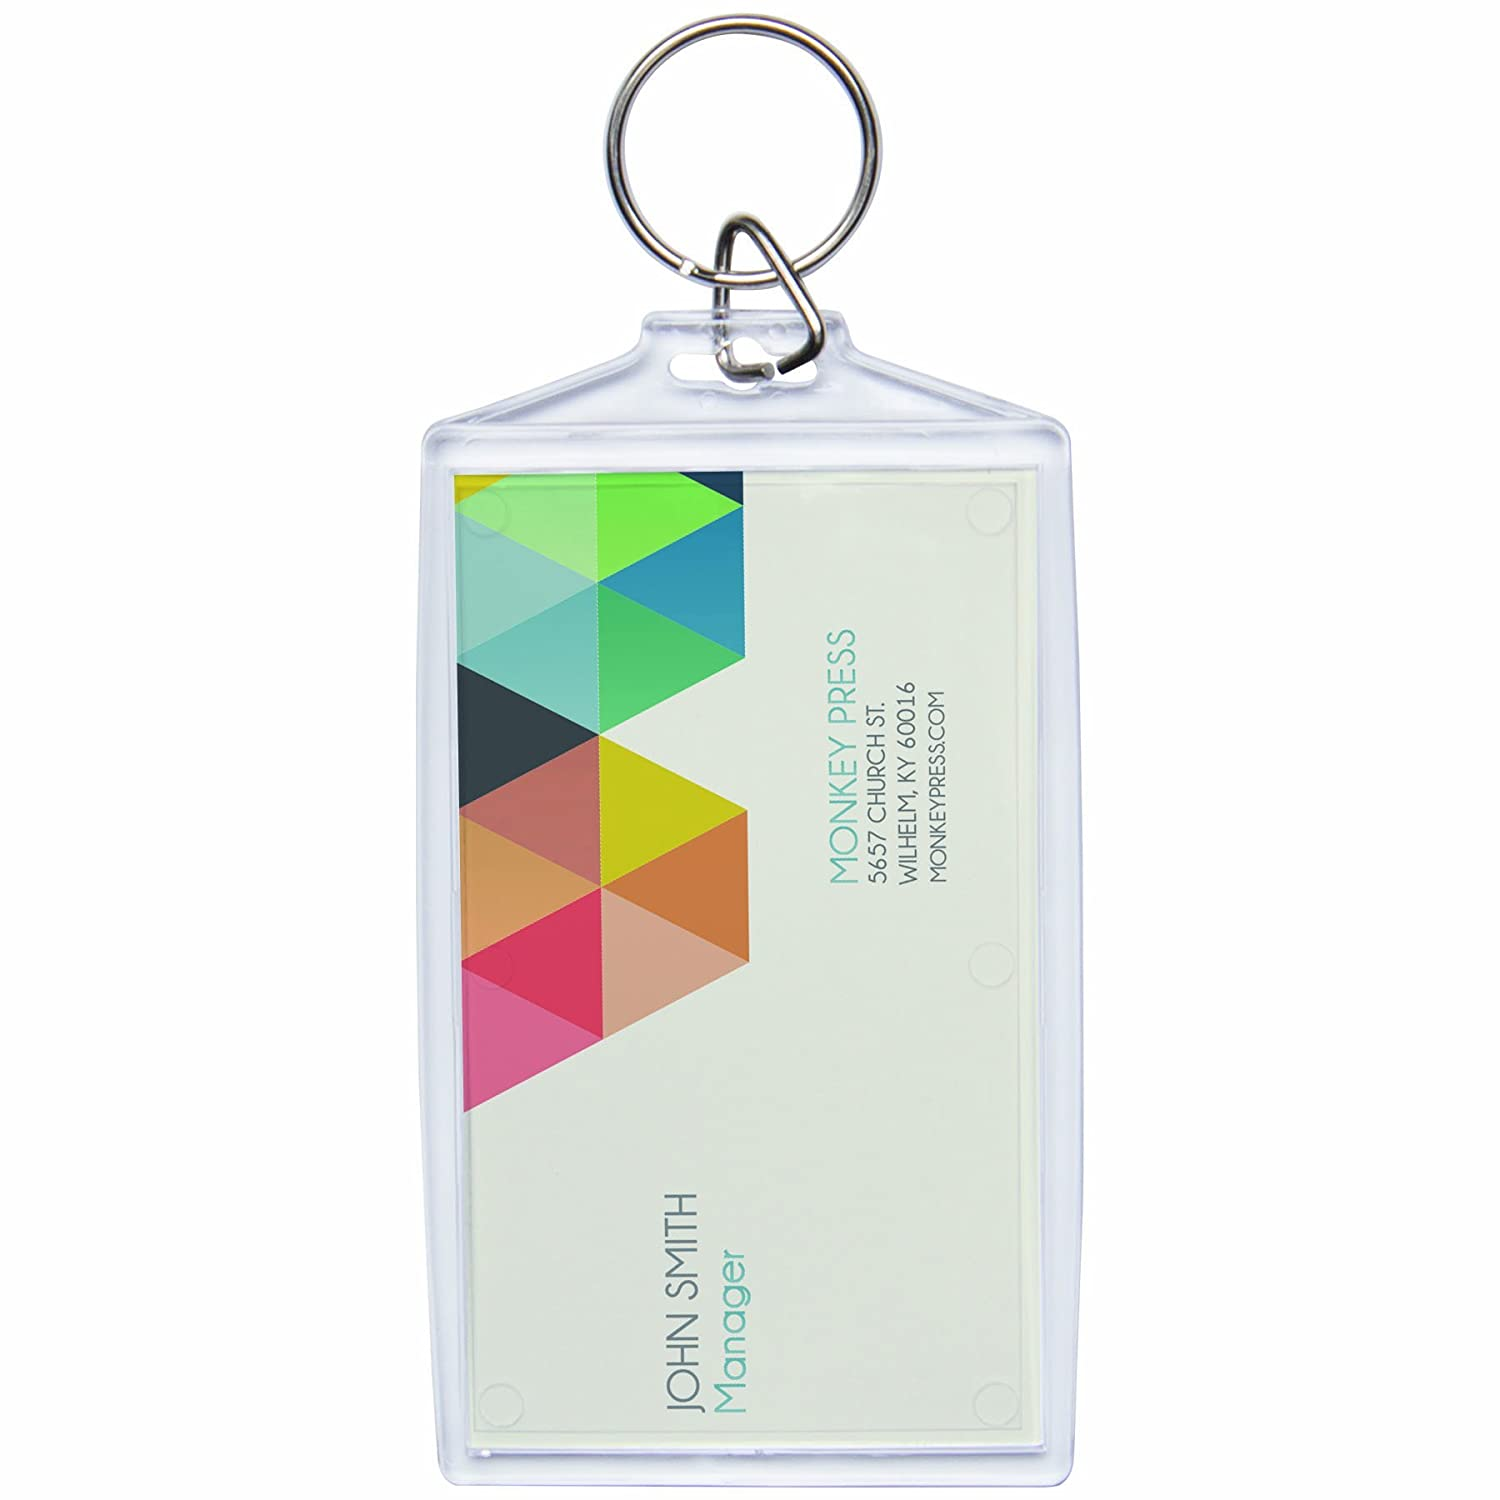 Acrylic Photo Snap-in Business Card Size Key Chain - 25 Pack Neil Enterprises Inc.